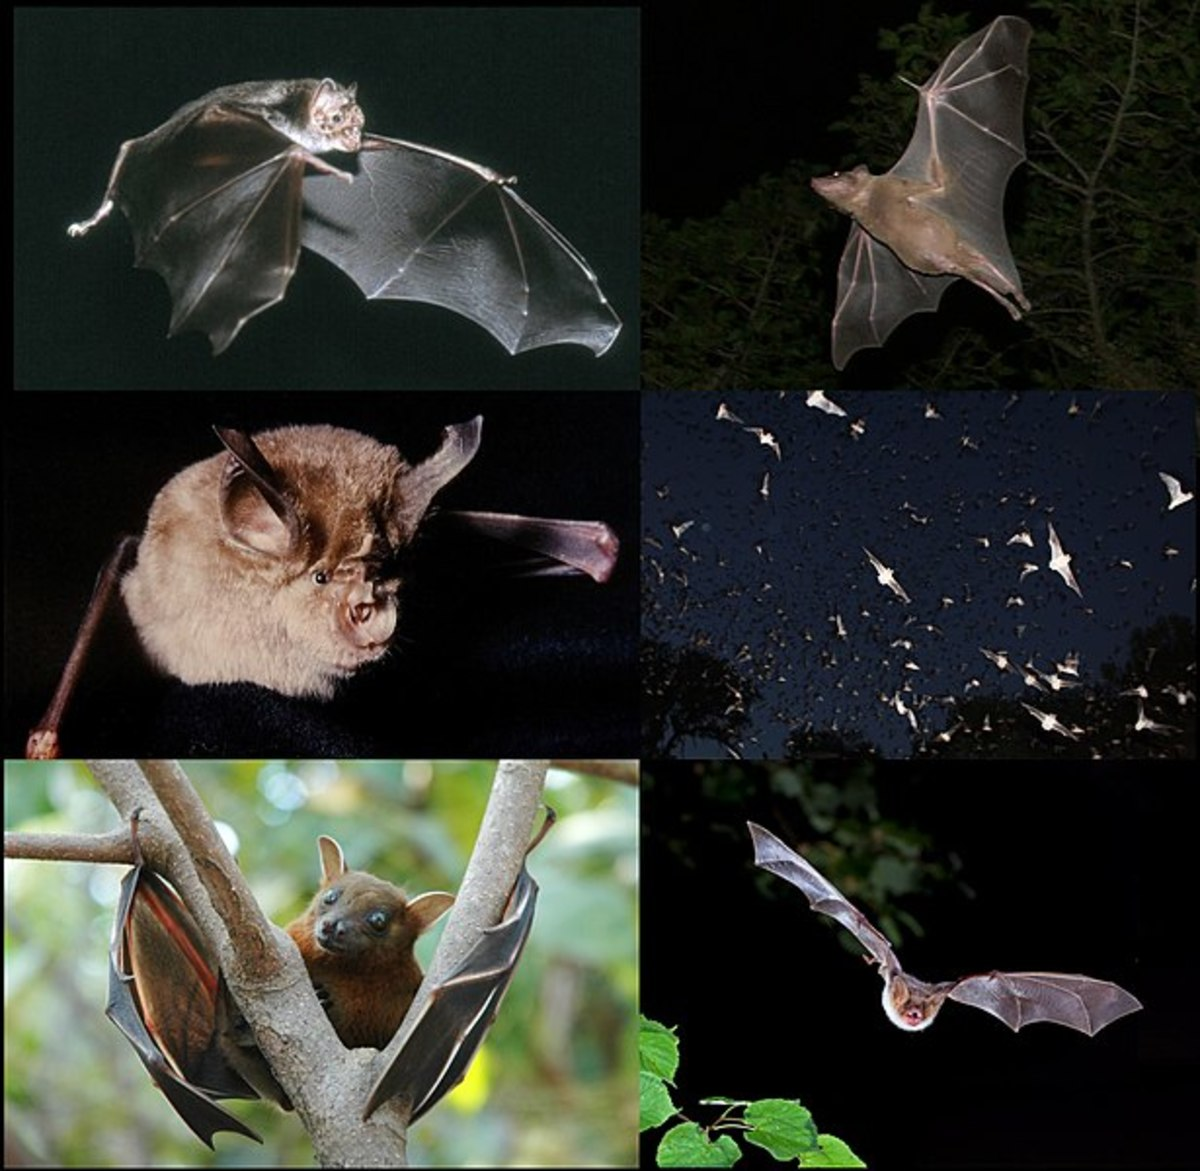 Clockwise: Common Egyptian Fruit Bat Rousettus aegyptiacus, Mexican Free-Tail Bat Tadarida brasiliensis, Myotis myotis, Lesser Short-Nose Fruit Bat Cynopterus sphinx, Horseshoe Bat Rhinolophus ferrumequinum, Common Vampire Bat Desmodus rotundus